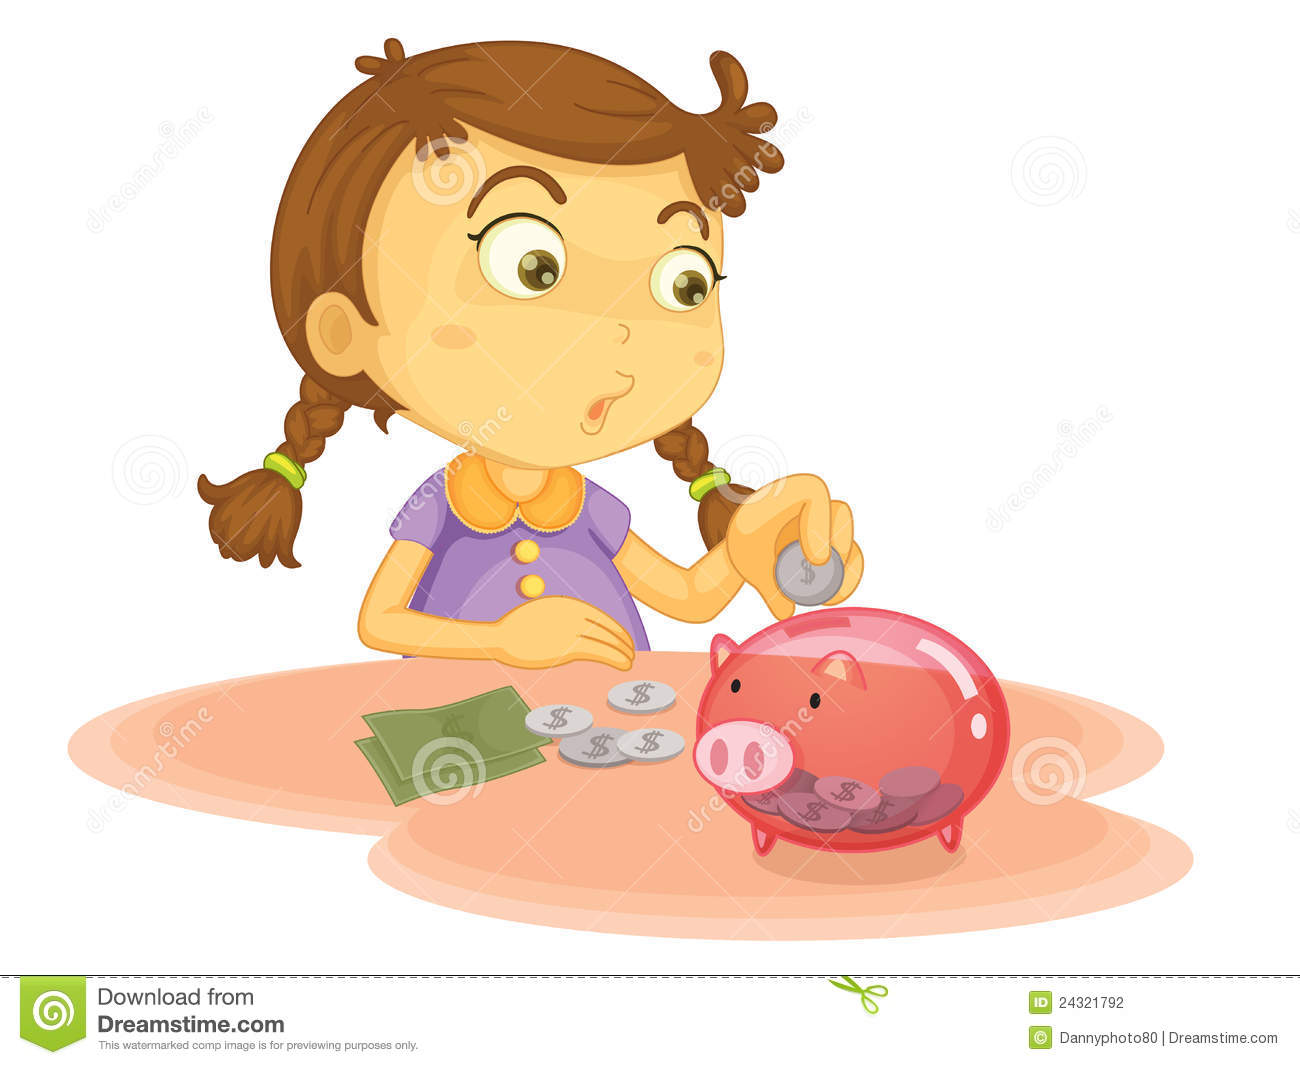 Kids with money clipart freeuse stock Kids saving money clipart - ClipartFest freeuse stock